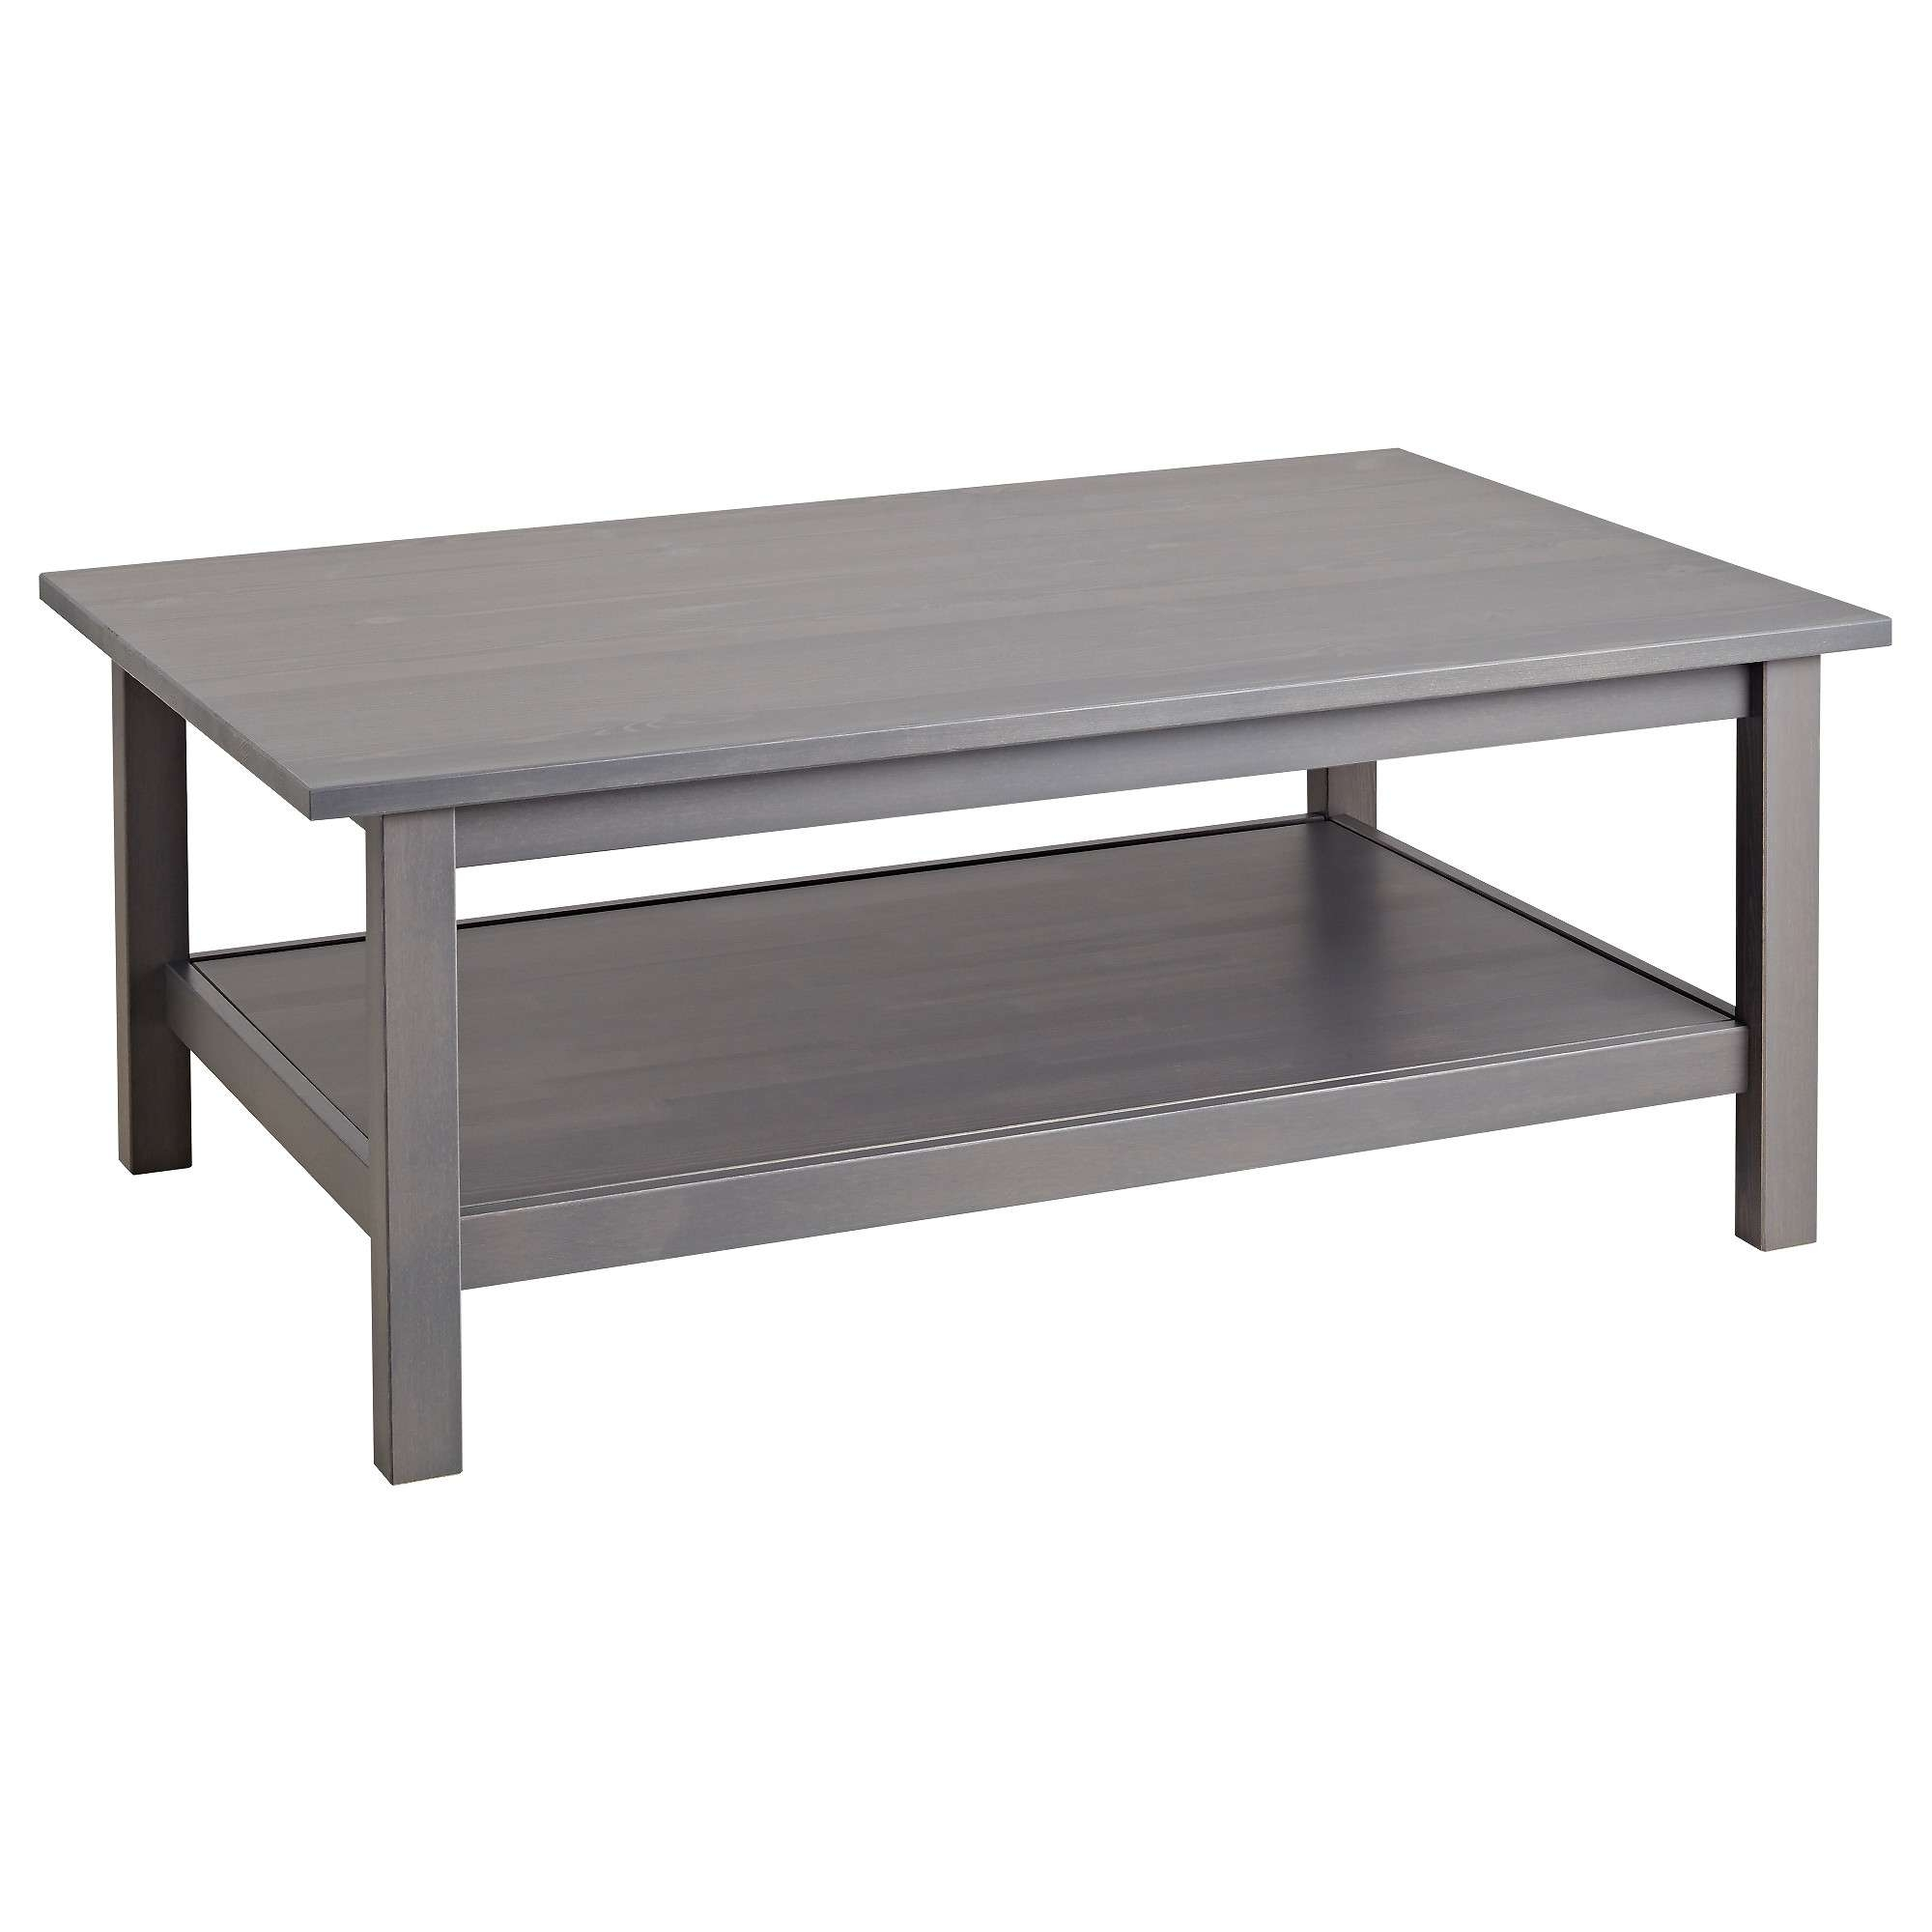 Large low level coffee table rascalartsnyc for Large low coffee table